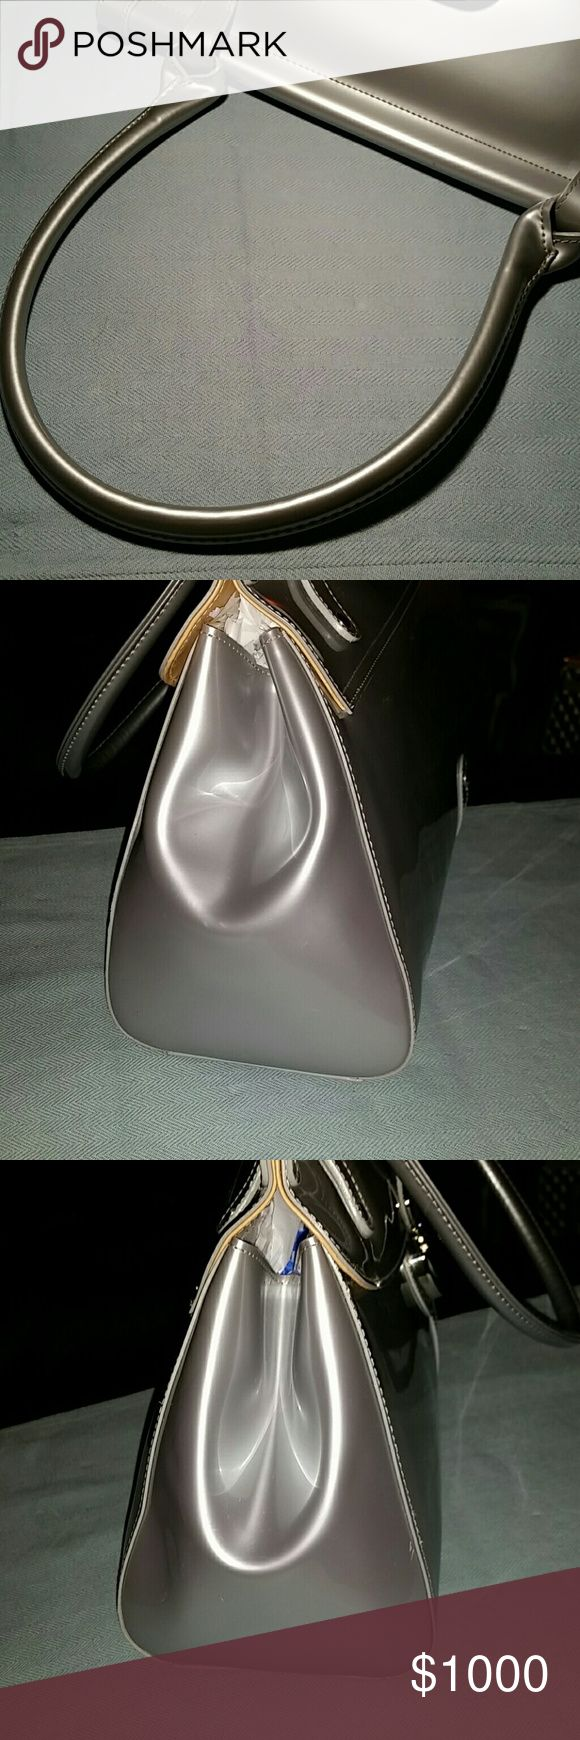 Additional pictures of Beijo bag Please ask questions before purchasing.  I'm happy to help! beijo Bags Satchels